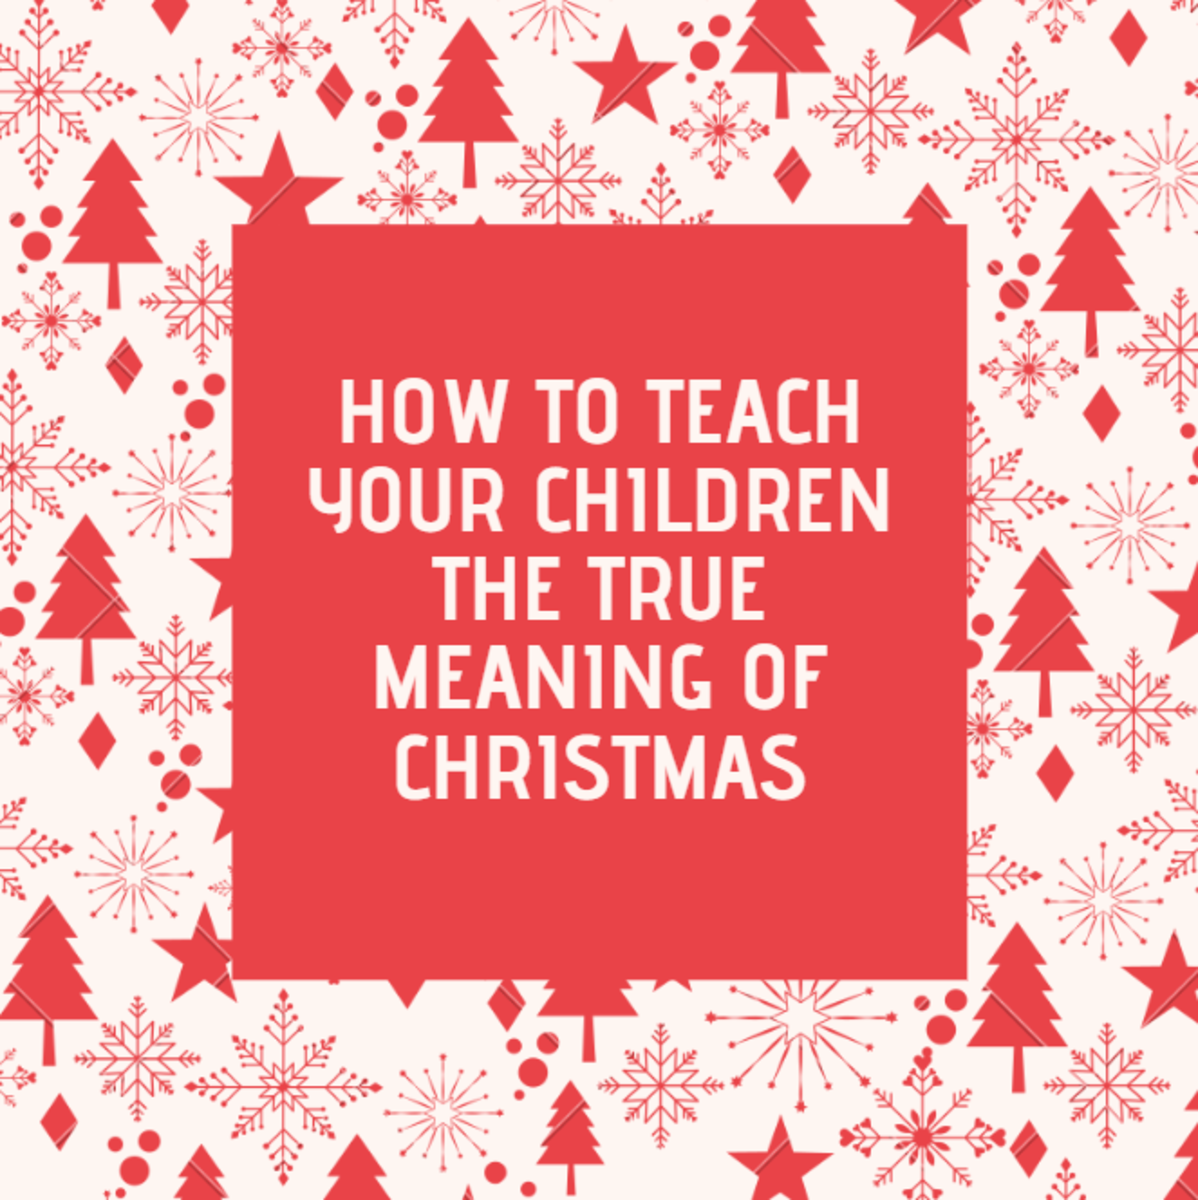 How to Teach Your Children the True Meaning of Christmas